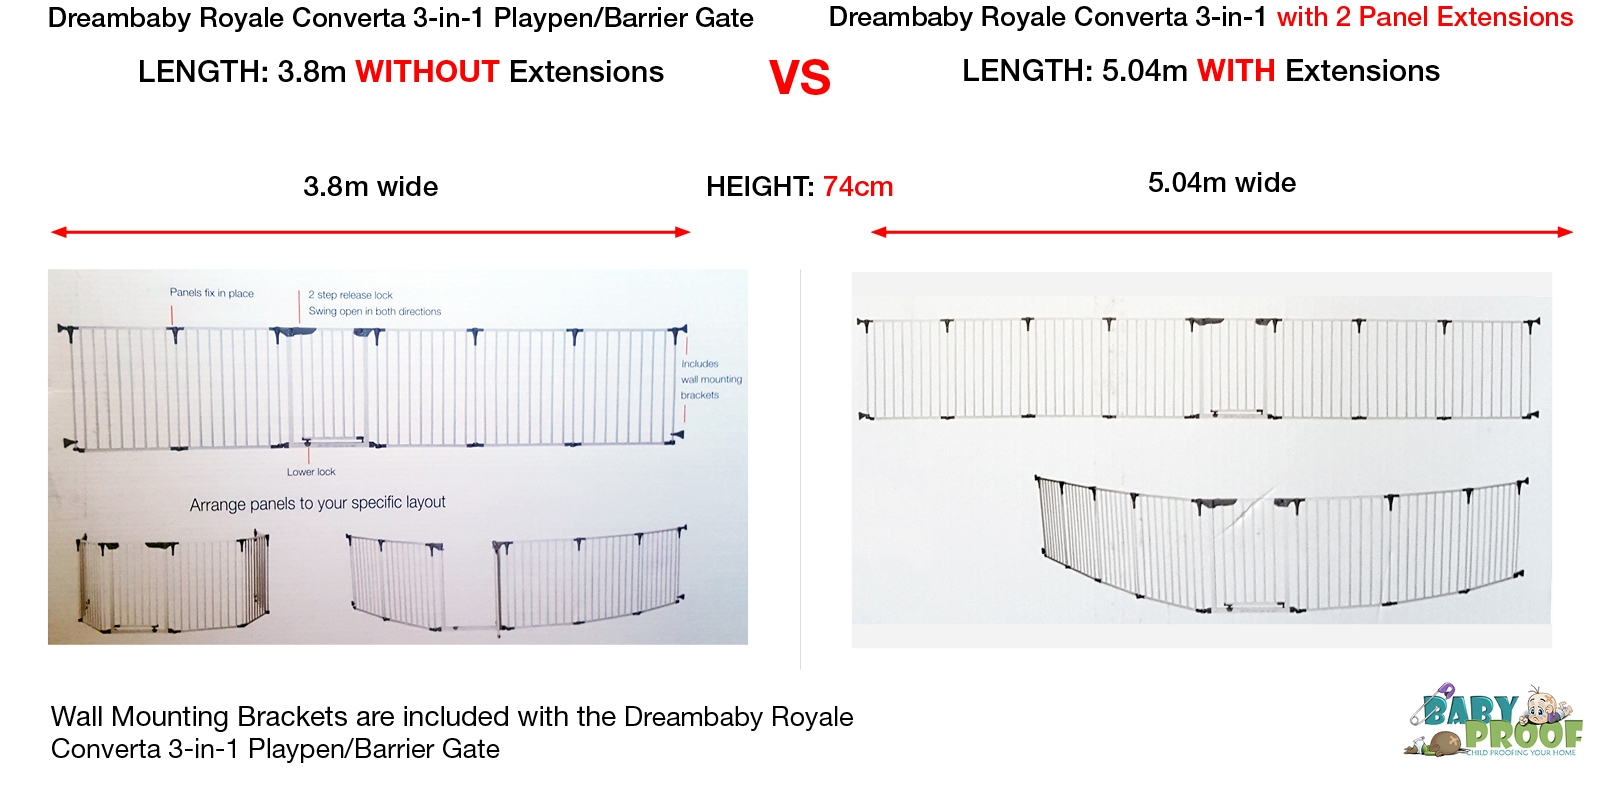 Dreambaby-Royale-Converta-Barrier-Gate-with-2-Panel-Extension-vs-without-5.04mMax